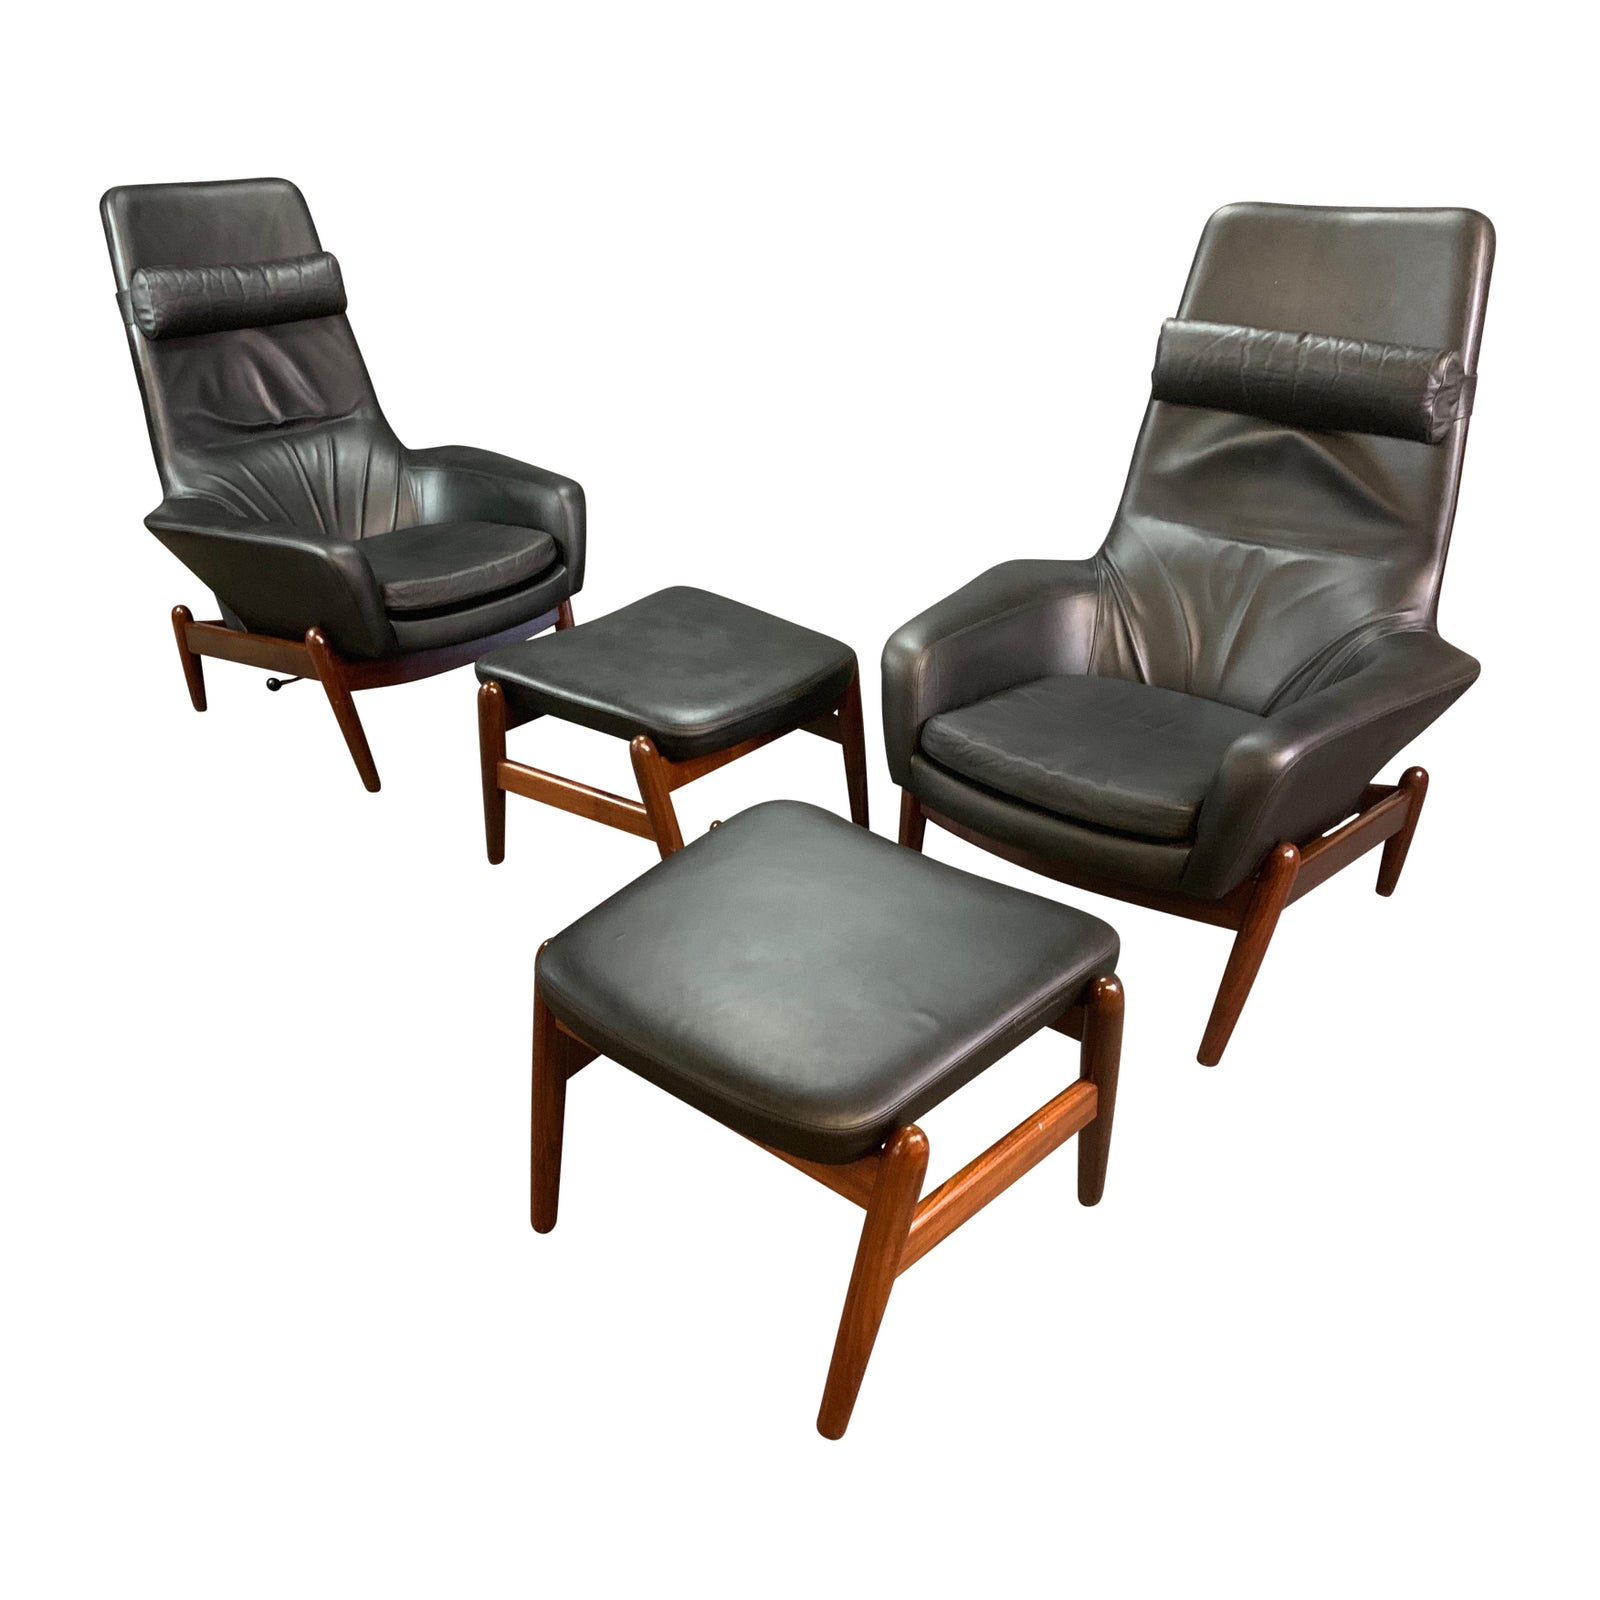 Pair of Vintage Danish Mid Century Modern Recliners Lounge Chairs & Ottomans Model Pd30 in Afromasia and Leather by Kofod Larsen — Aymerick Modern